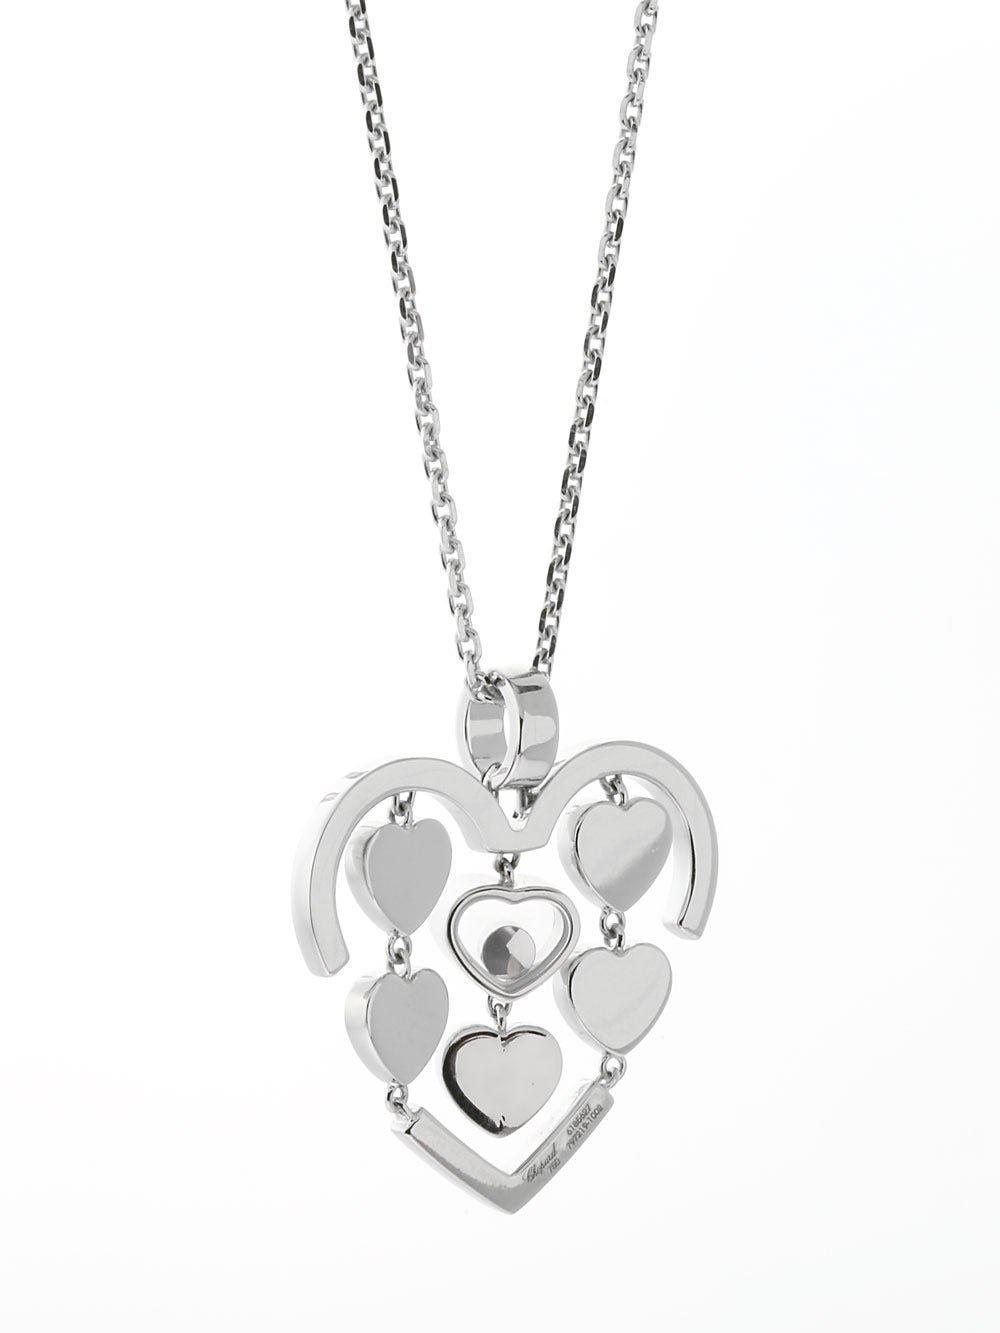 A magnificent authentic Chopard necklace featuring a multitude of delicate hearts enhanced with an iconic Chopard happy diamond (.05ct) set in 18k white gold.  Pendant Dimensions: 1.00